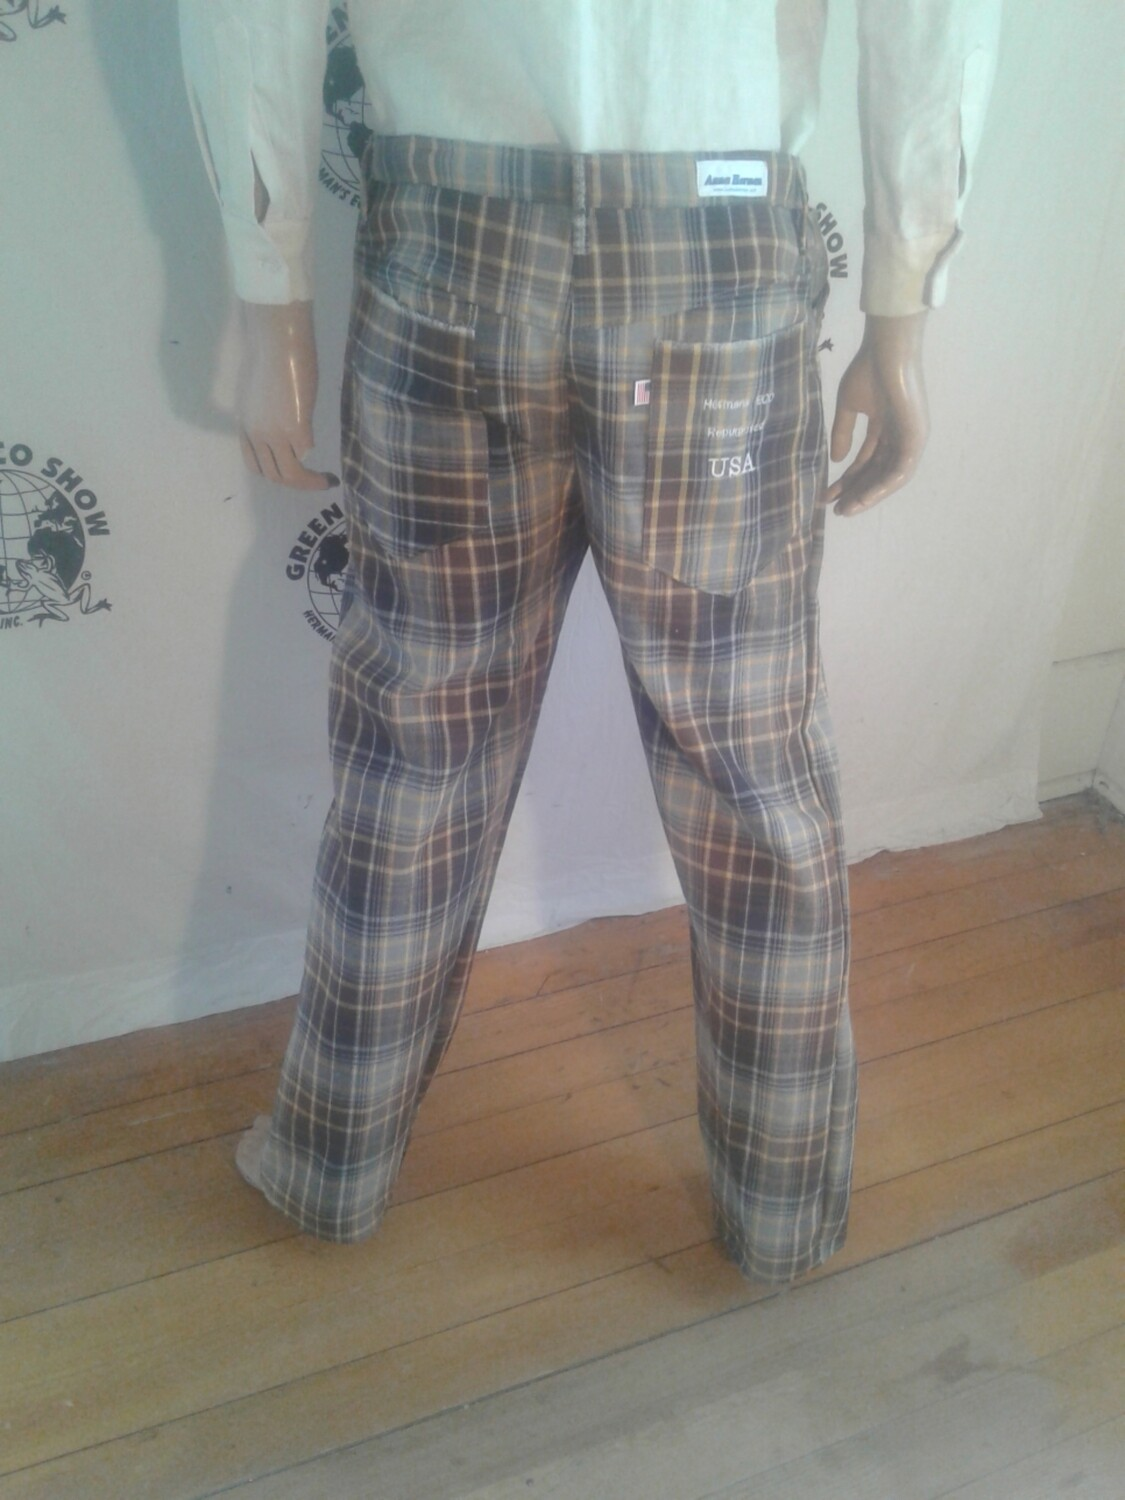 Plaid jeans 36 X 32 Hermans made in uUSA